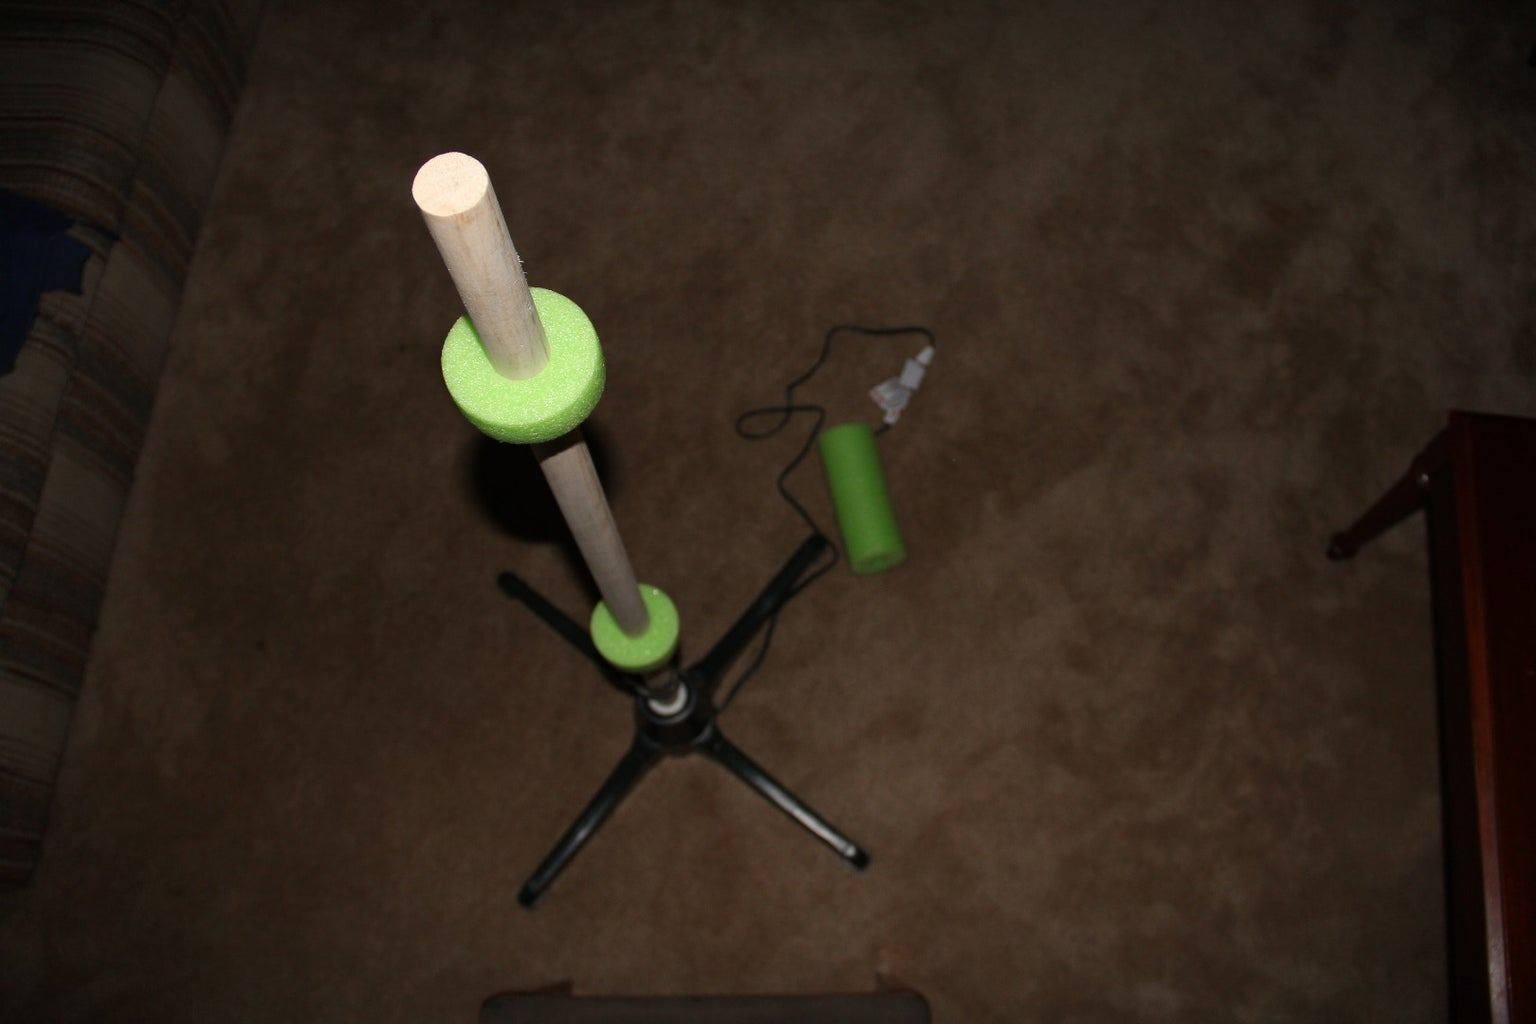 Assemble the Rotating Tree Stand